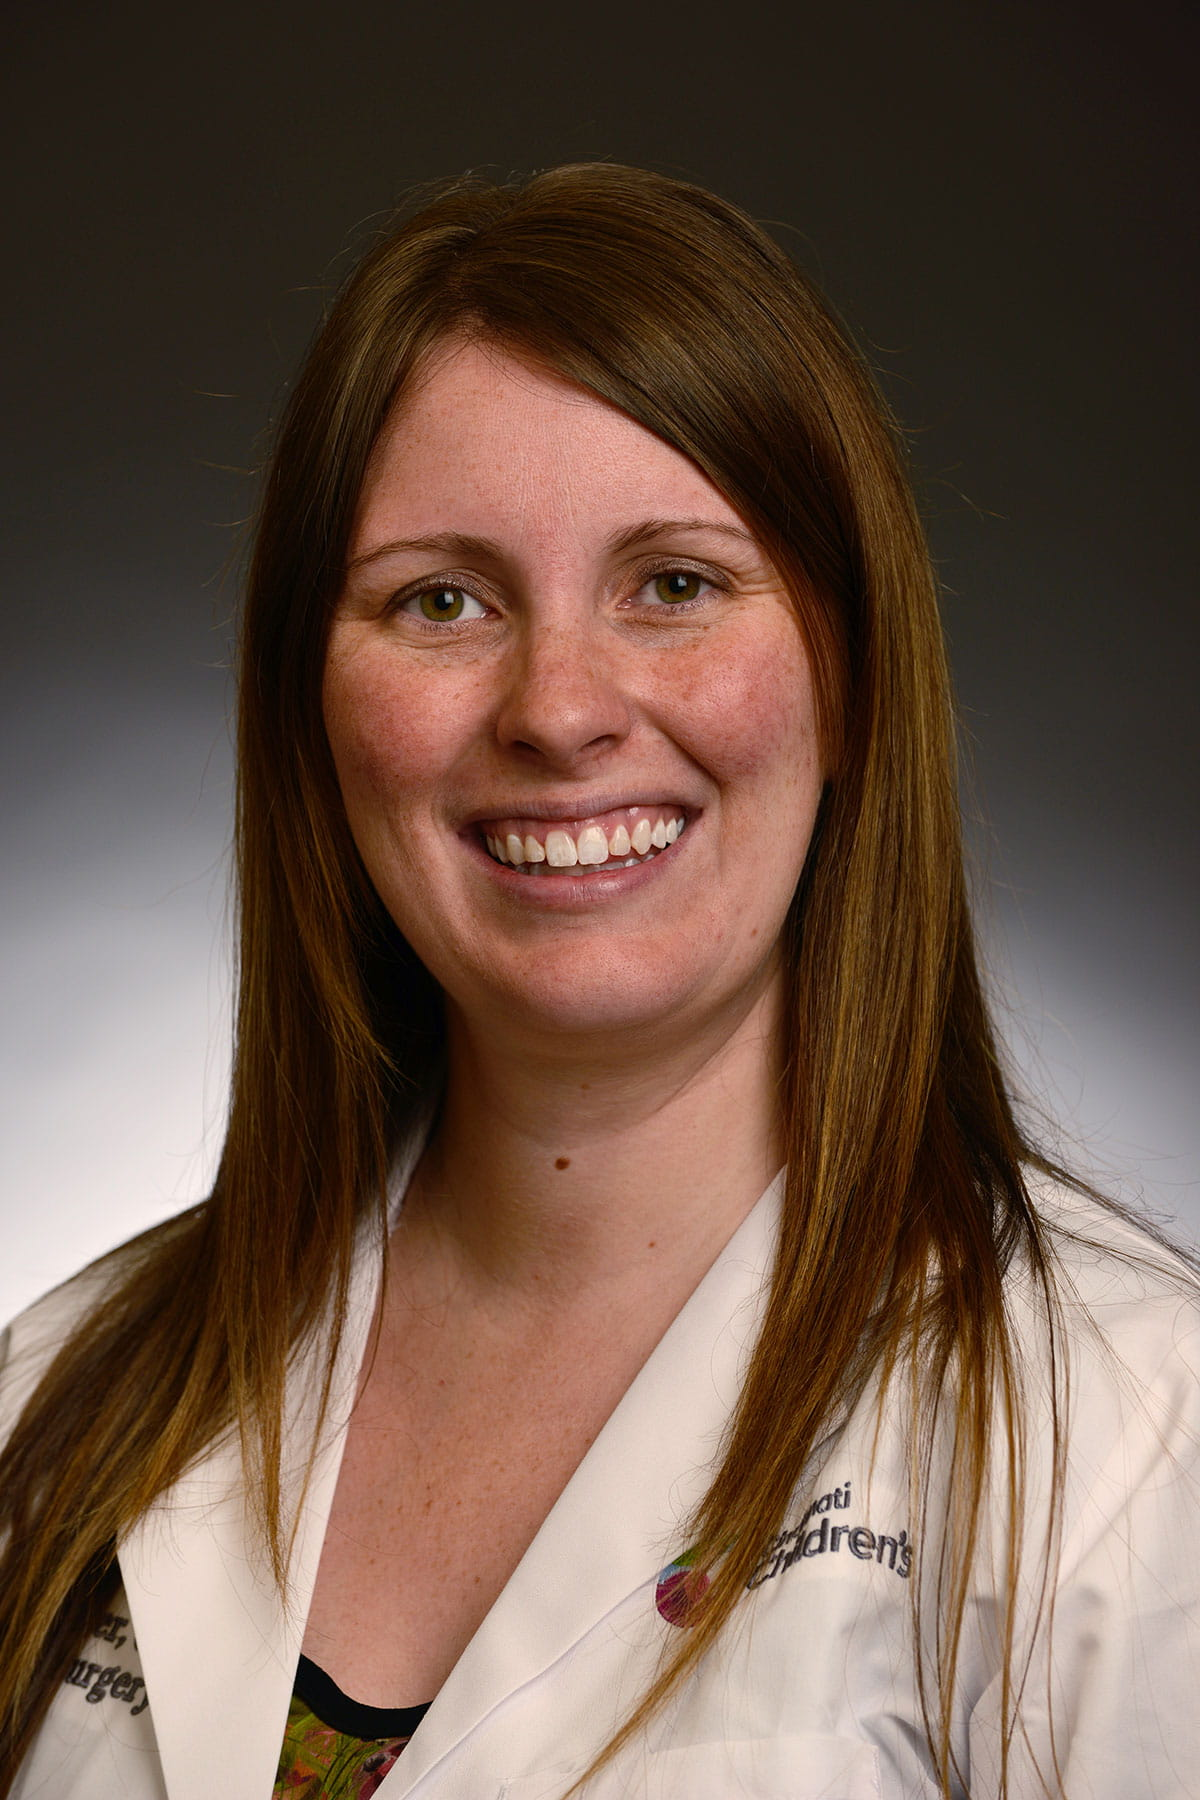 Krista A. Carpenter, APRN, CNP